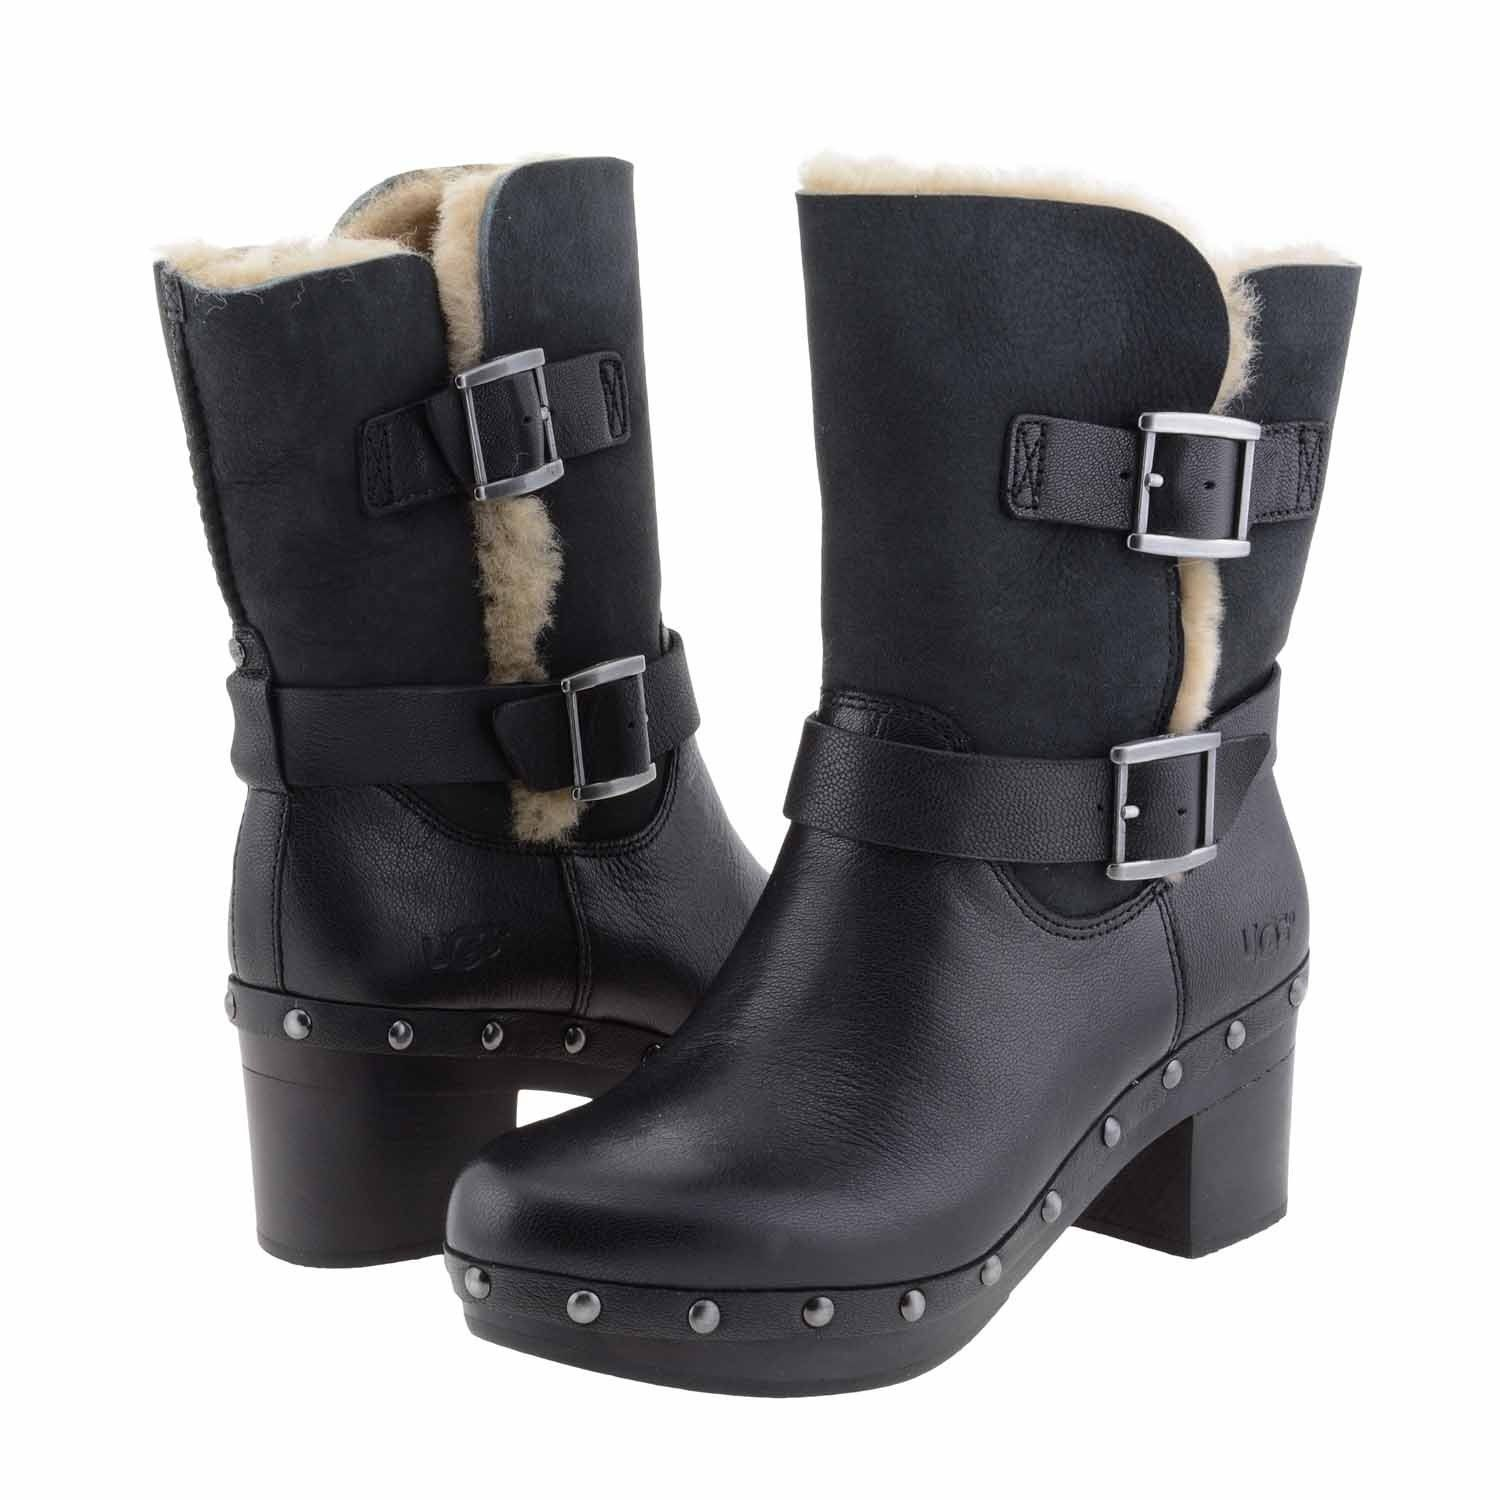 UGG Women Brea Black Boot 9 B M Made in USA or Imported